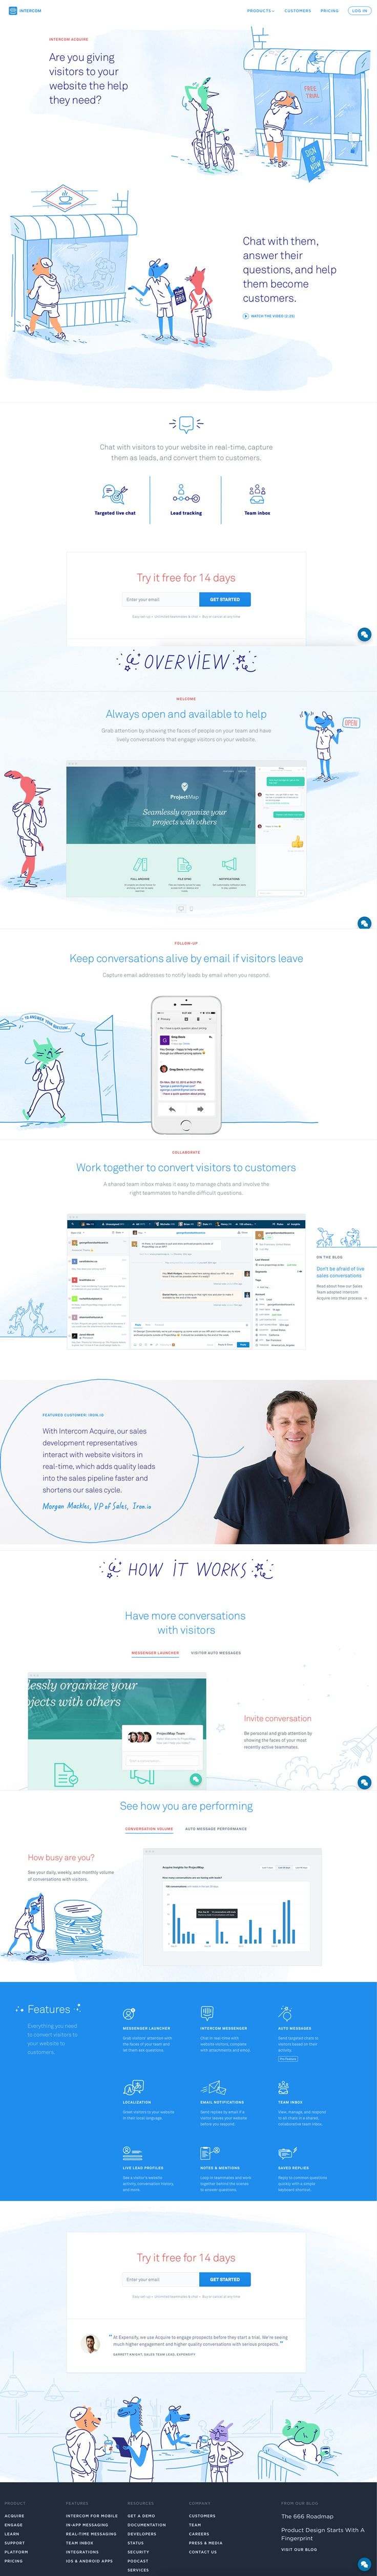 I love the use of integrating illustration in this website, intercom.io